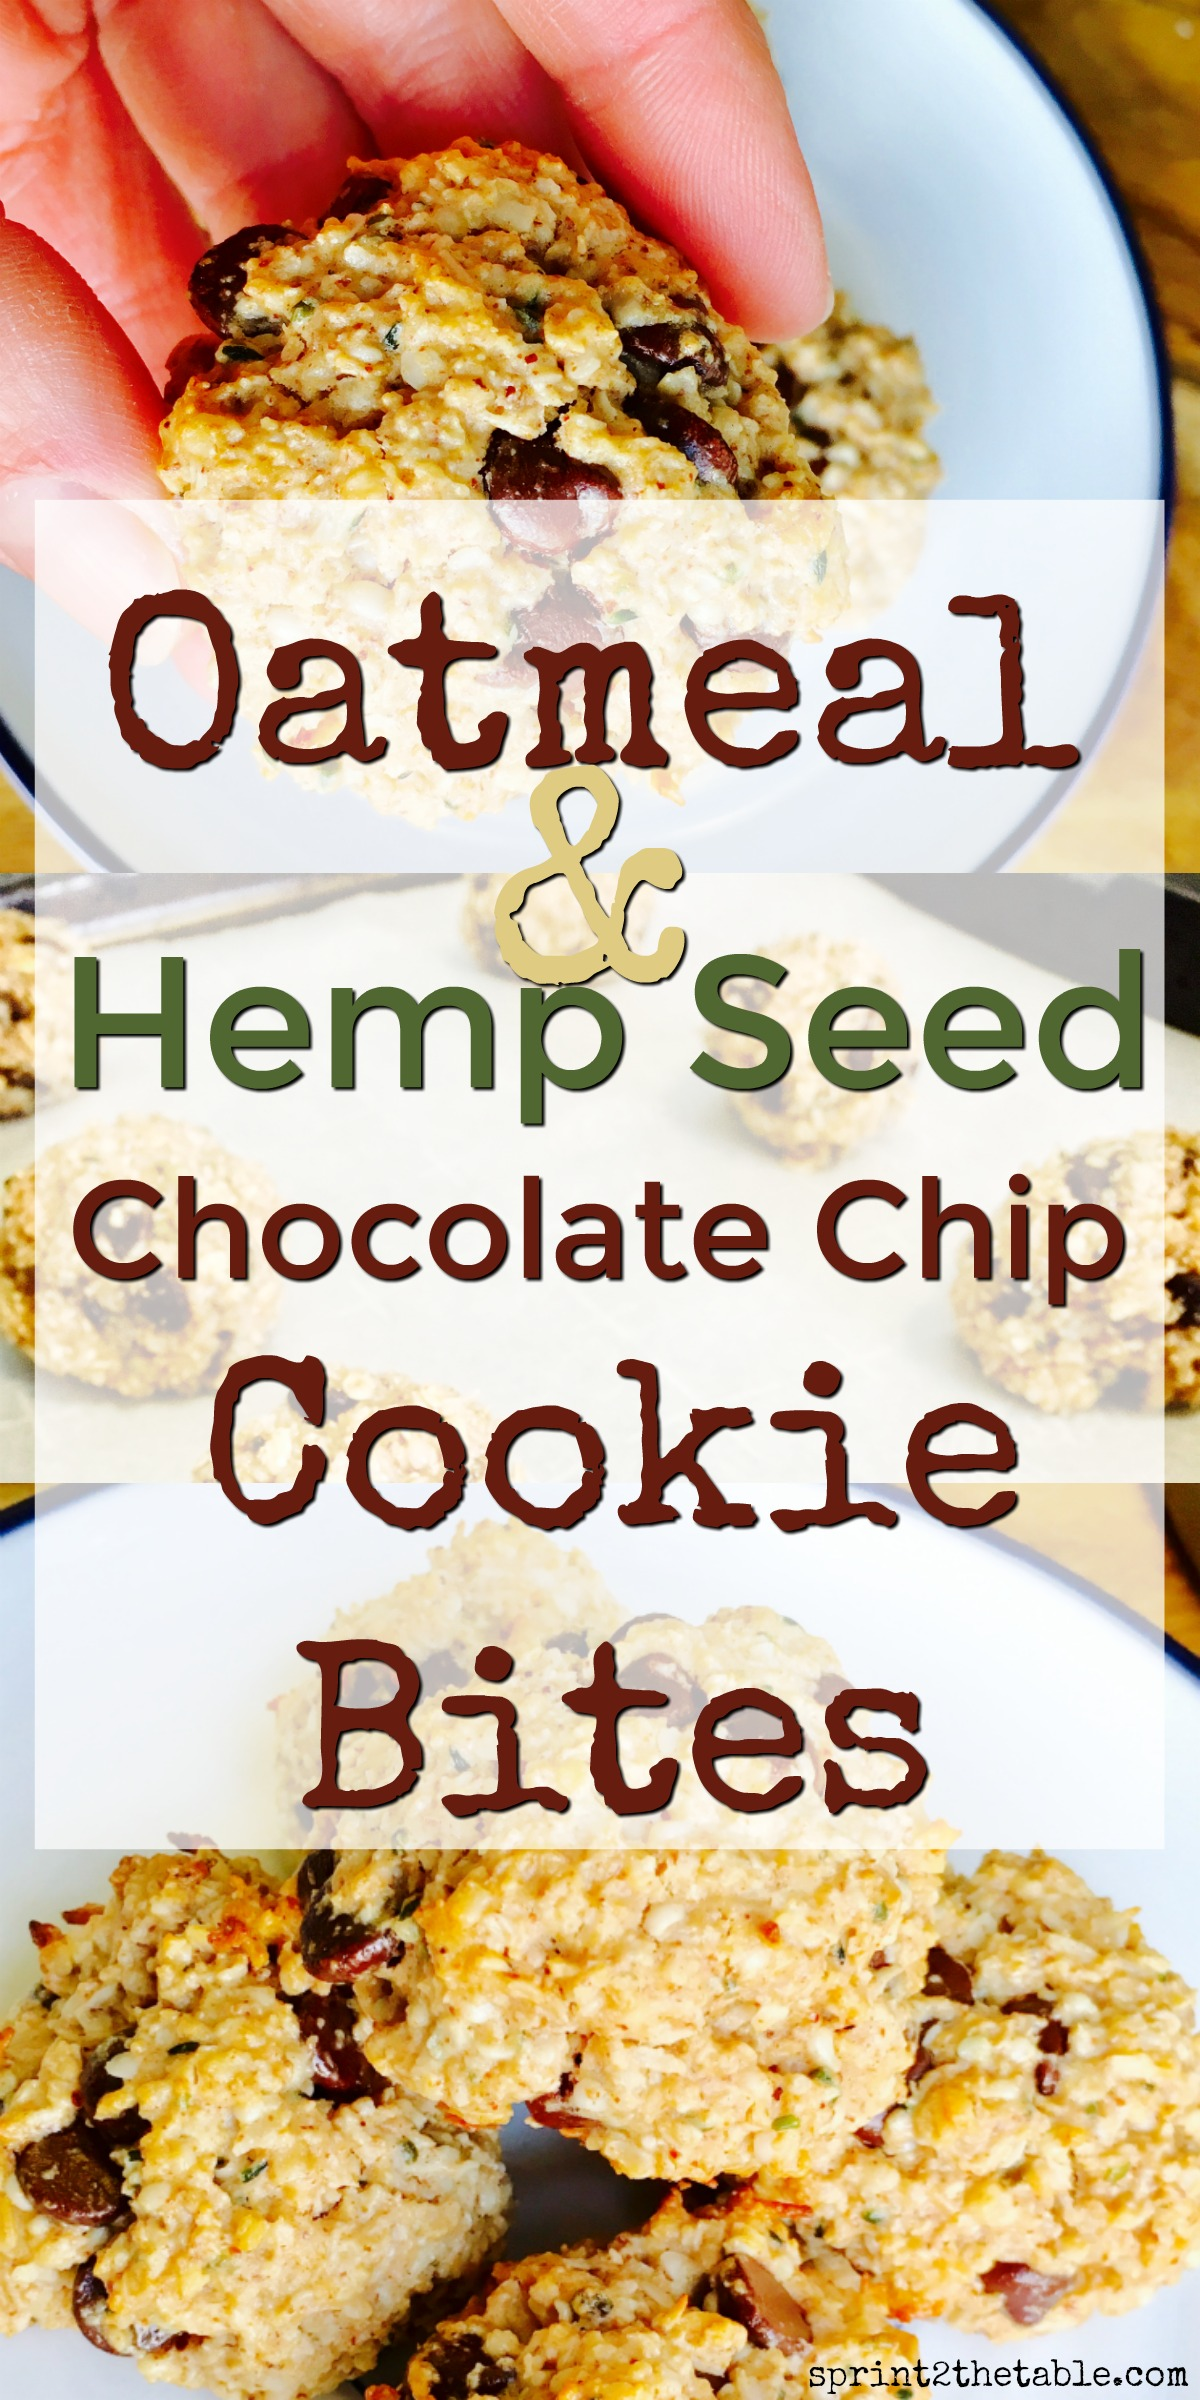 Oatmeal Hemp Seed Chocolate Chip Cookie Bites Sprint 2 The Table